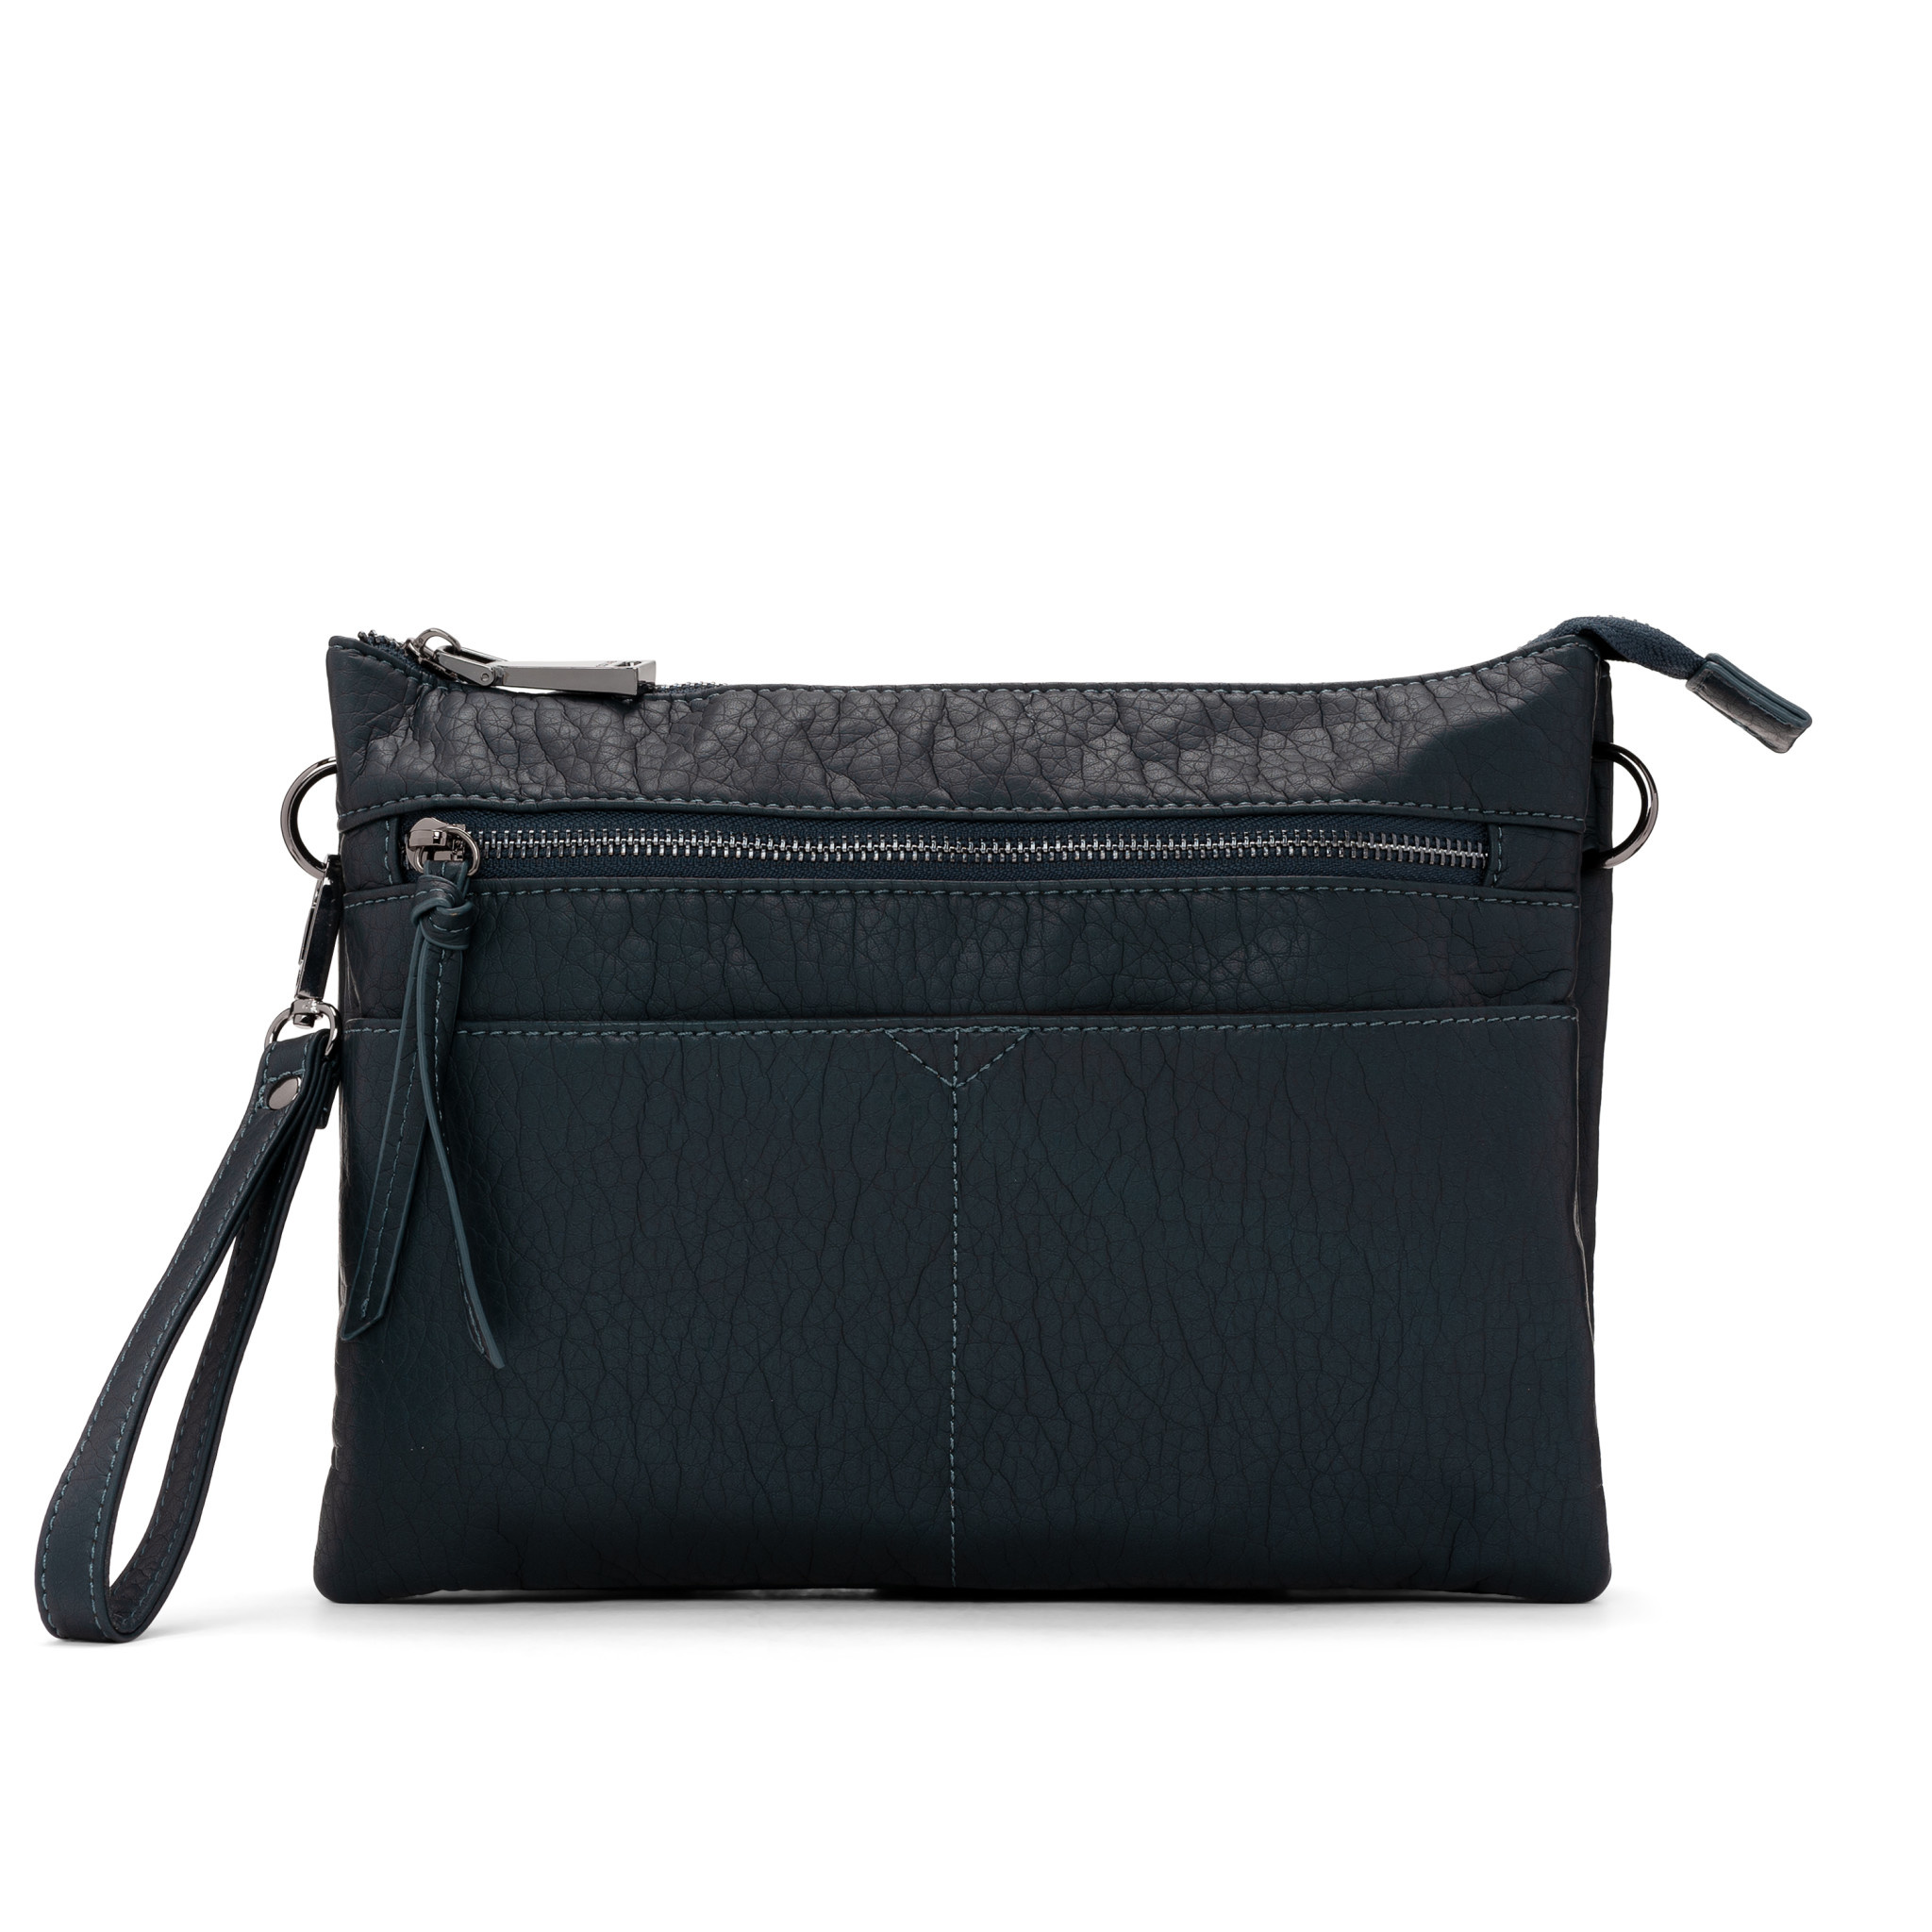 Colab Colab Washed Vintage Clutch Crossbody (#6347) - Black